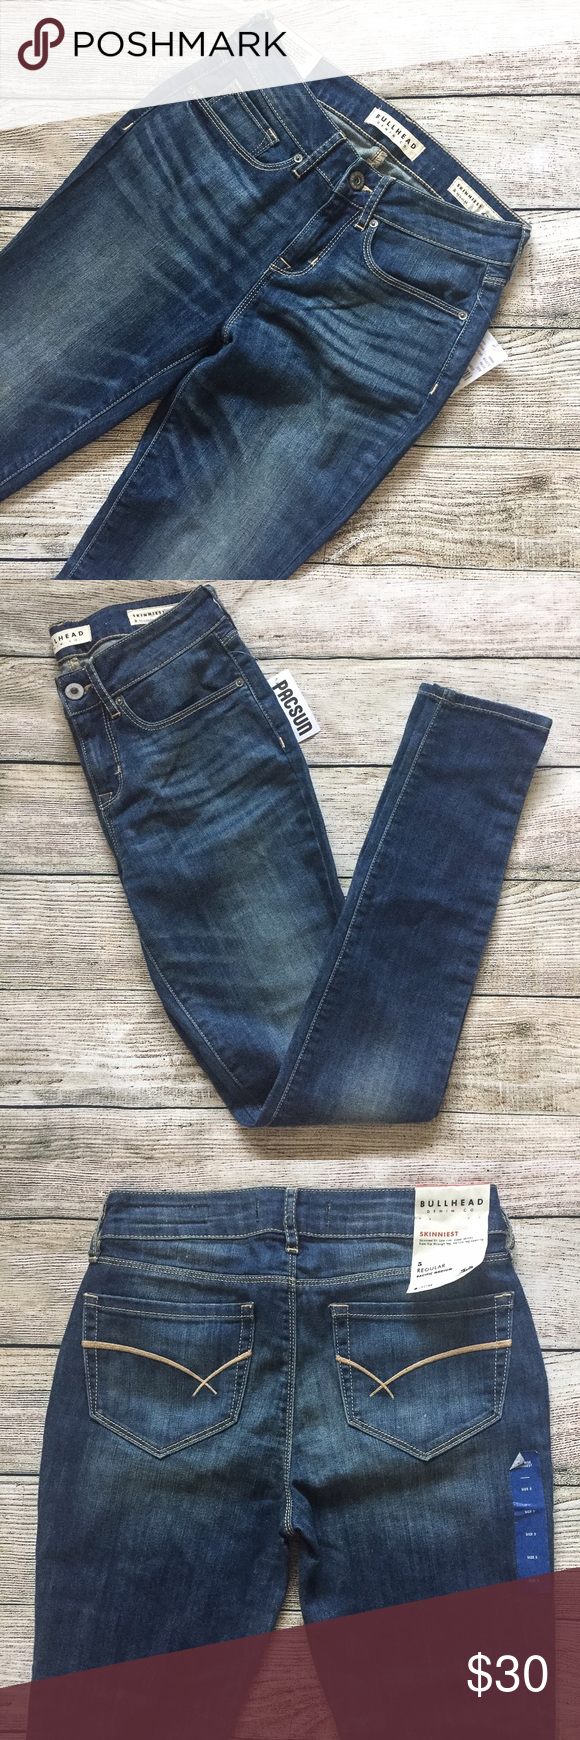 """{Bullhead} •NWT• Skinniest Jeans • Super skinny fit, slim from hip to hem • Fabric is stretchy  • New with tags  • 13.5"""" waist laying flat • 30"""" inseam • 9"""" front rise   No trades   